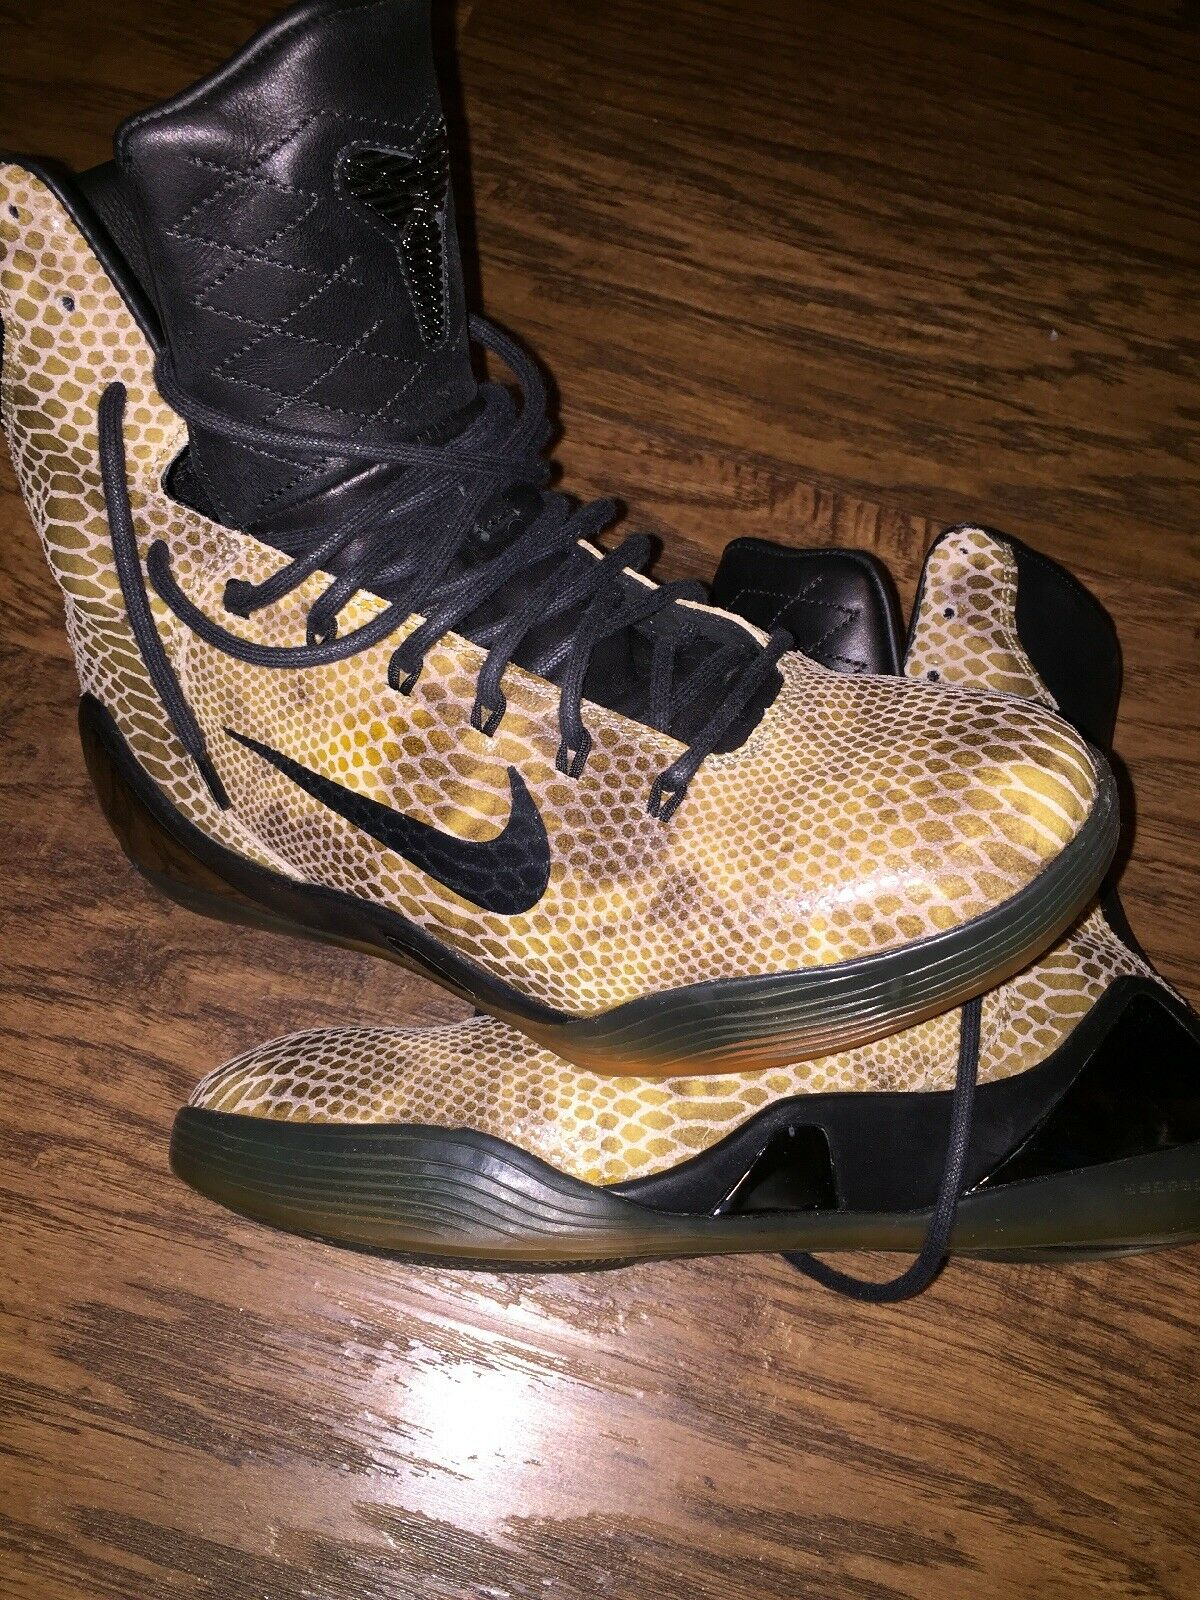 huge discount cb5f7 a0b0a Men s Nike Nike Nike Kobe 9 High Ext QS Snakeskin shoes Size 9.5 716616-001